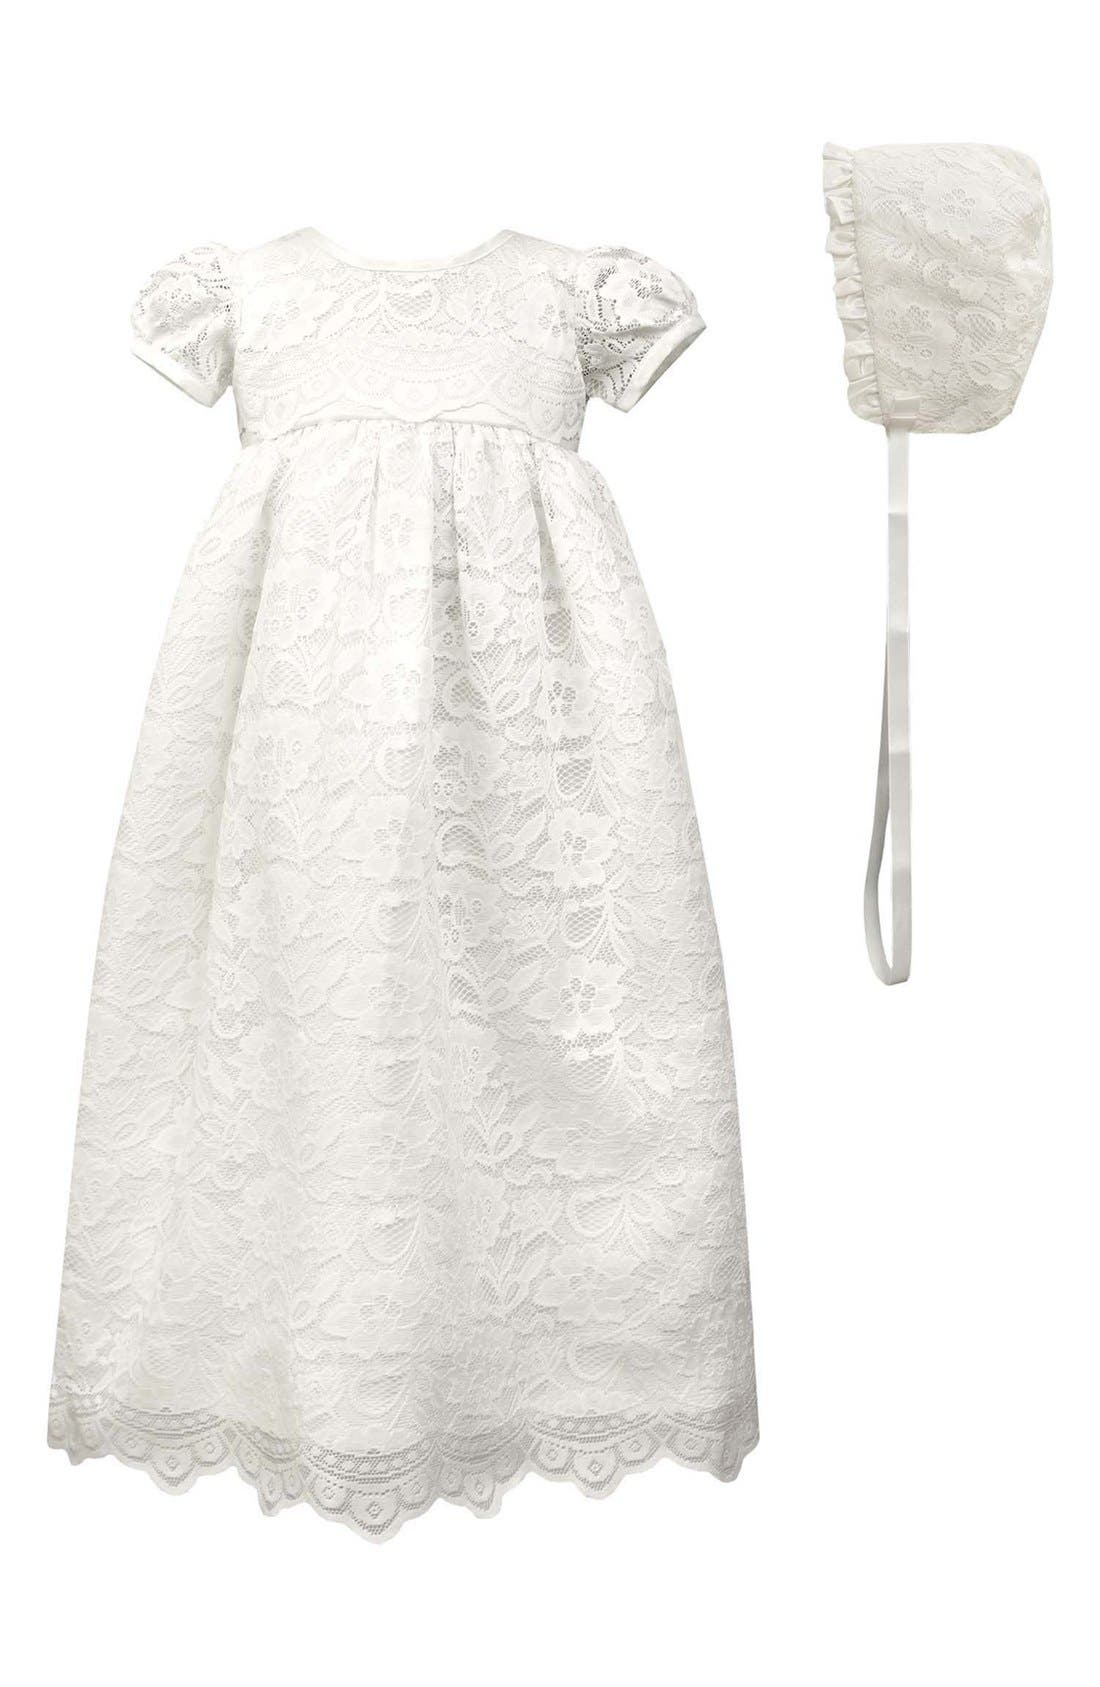 Infant C.i. Castro & Co. Scalloped Lace Christening Gown & Bonnet